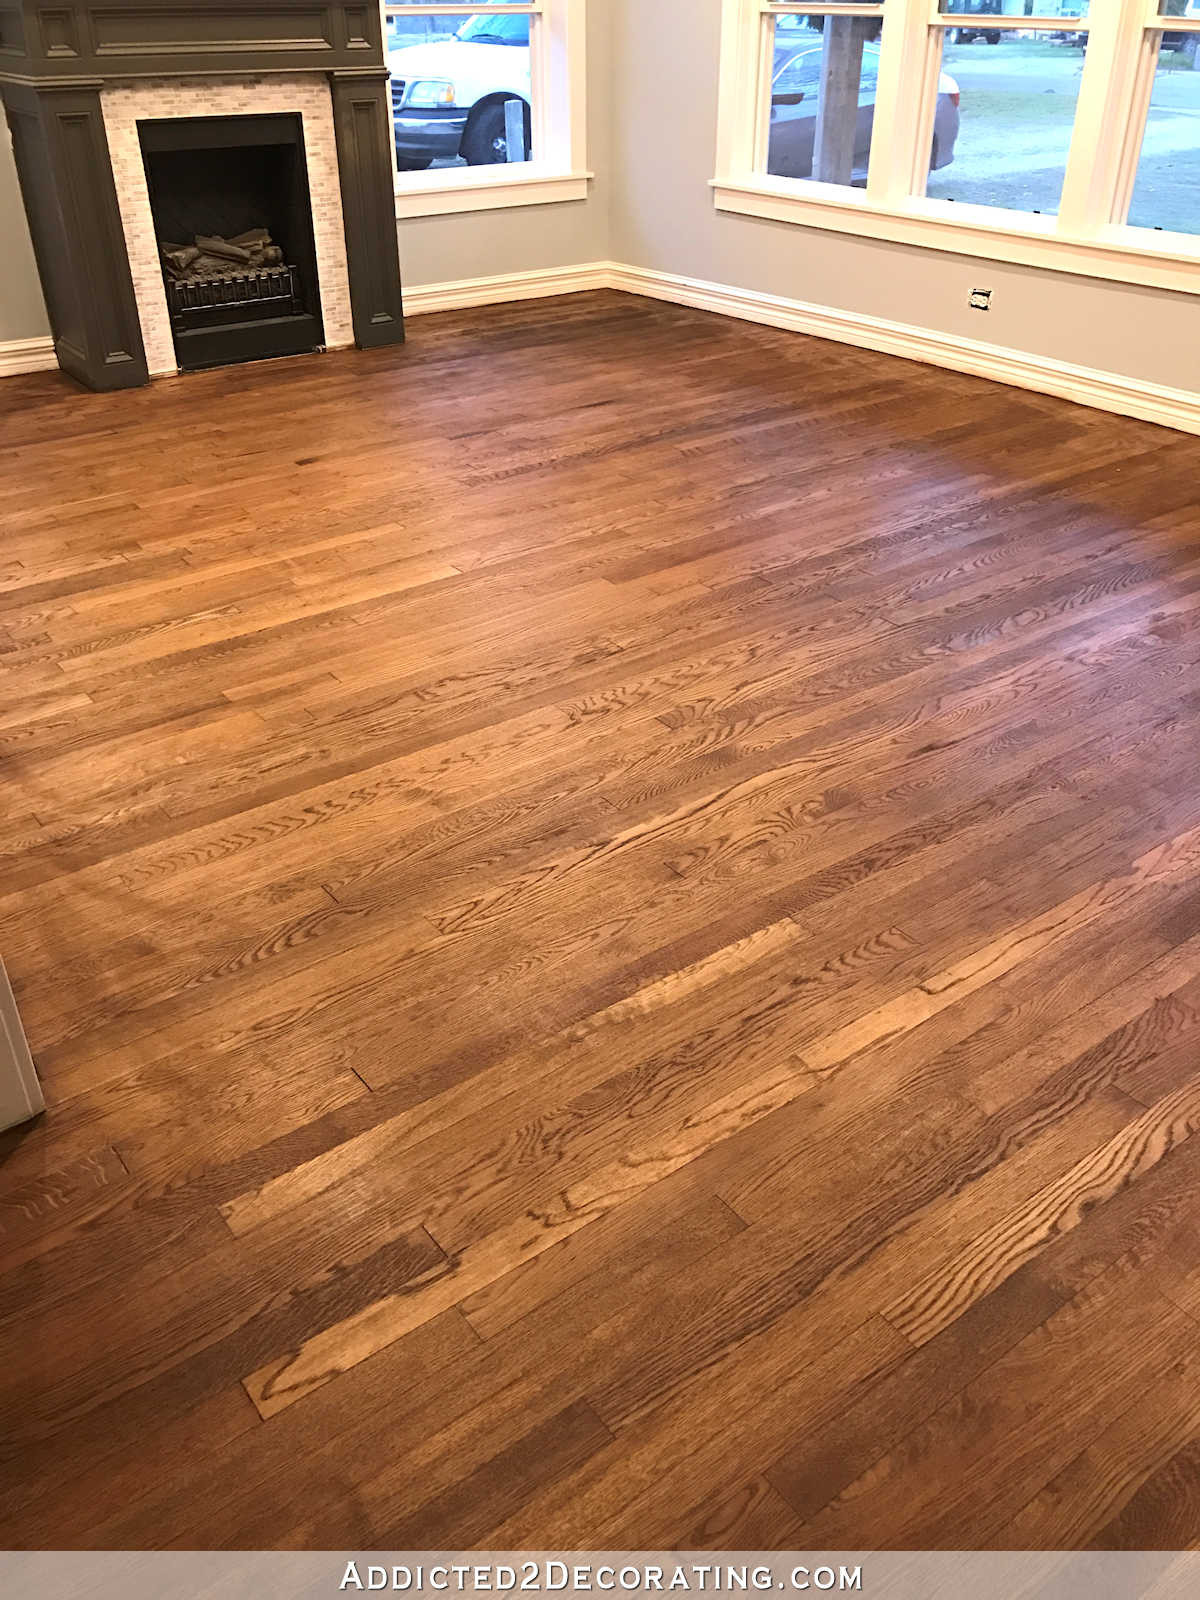 hardwood flooring selection tips of adventures in staining my red oak hardwood floors products process inside staining red oak hardwood floors 8a living room and entryway